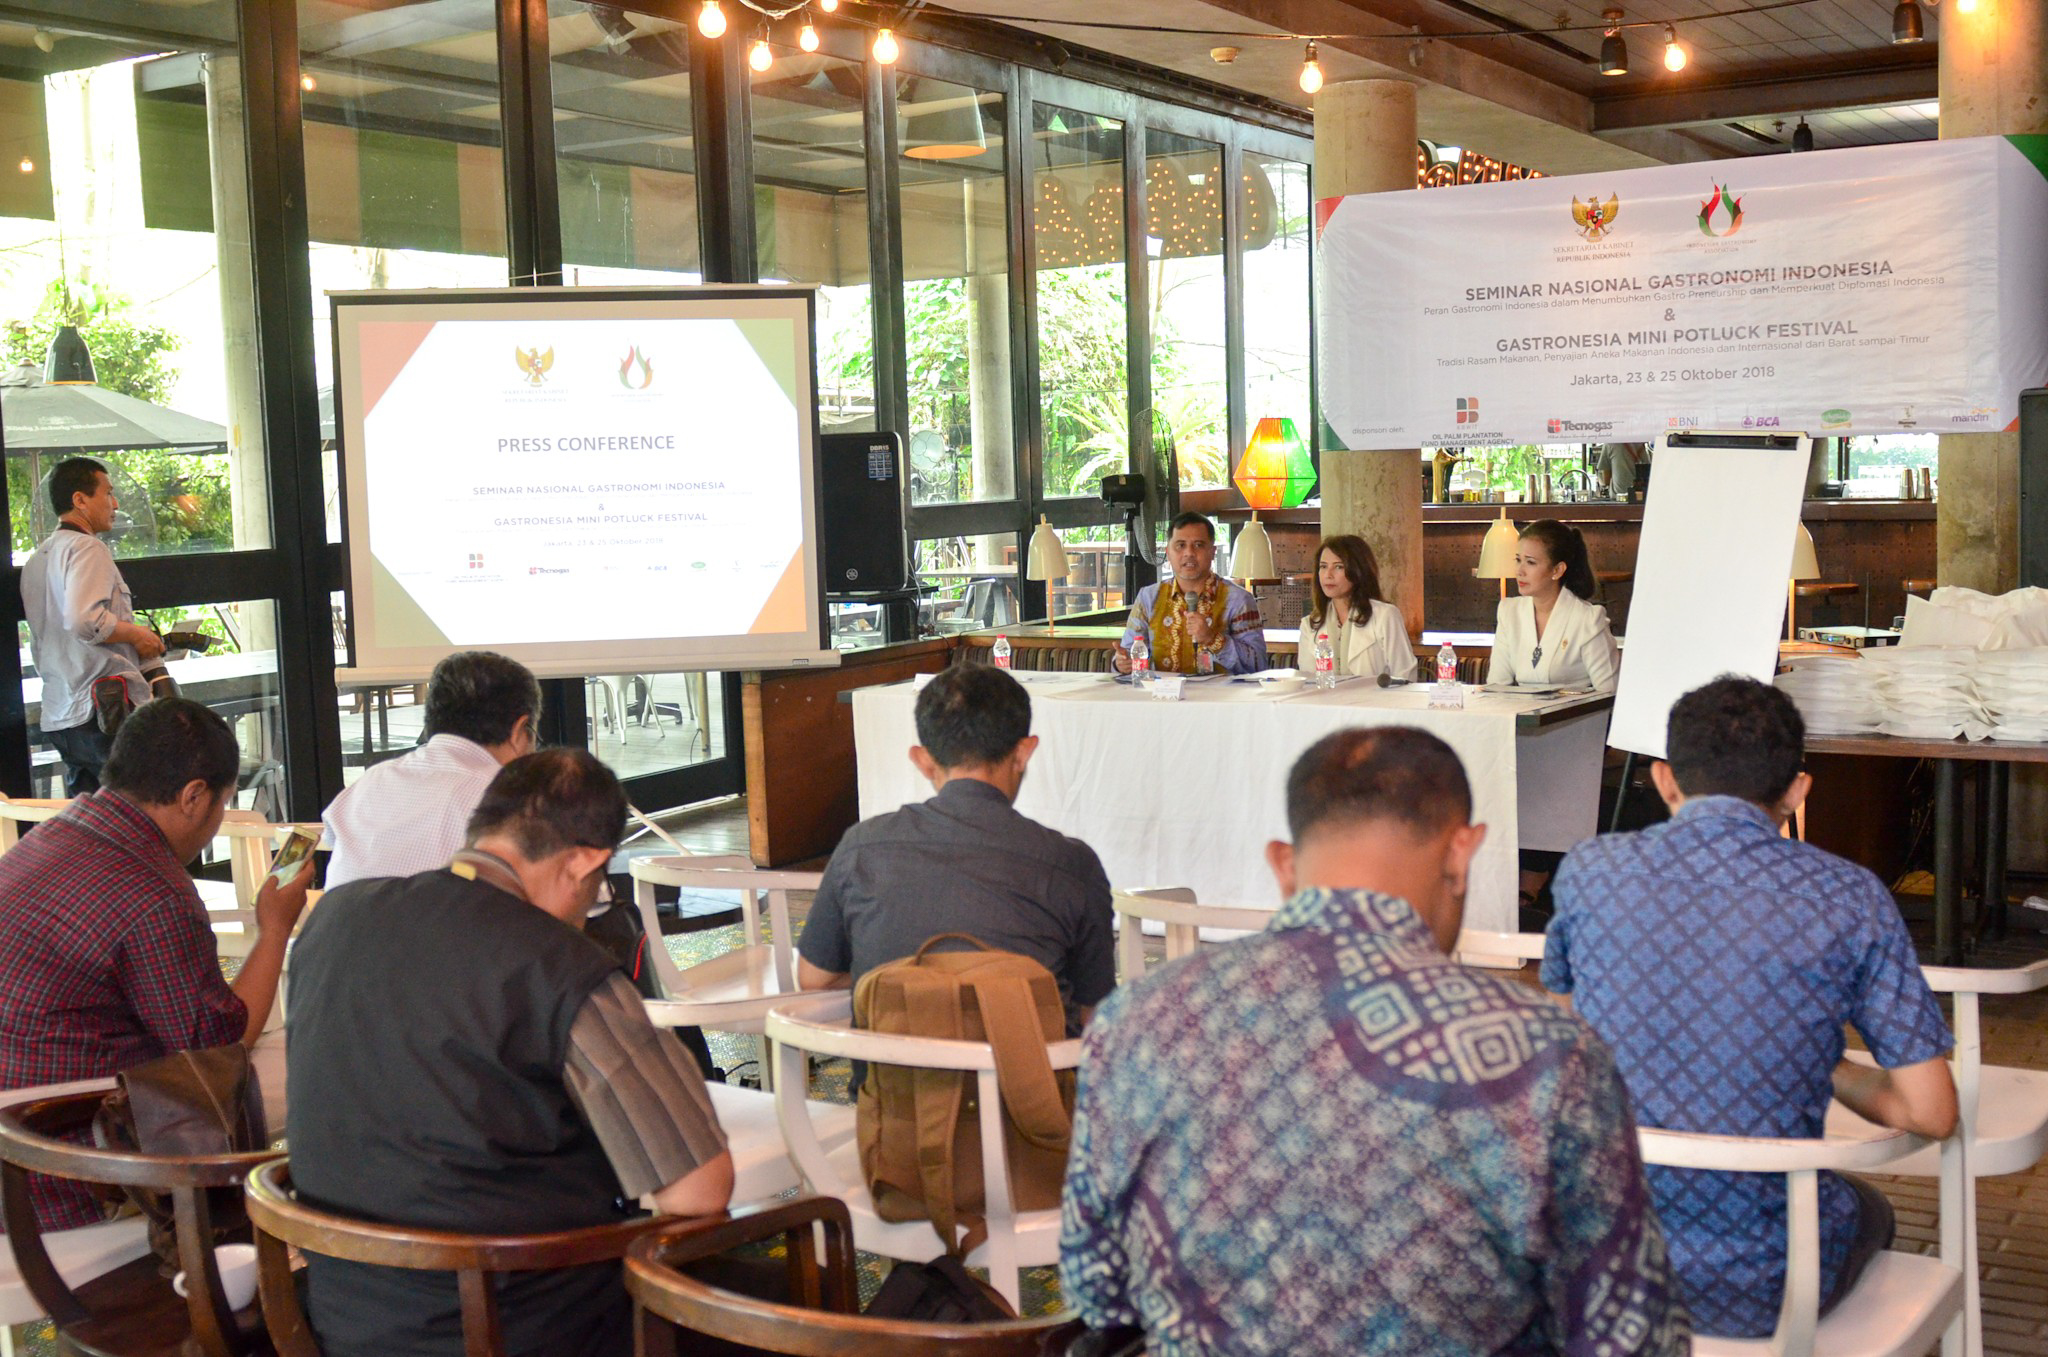 Palm Oil is Attractive to Indonesian Gastronomy